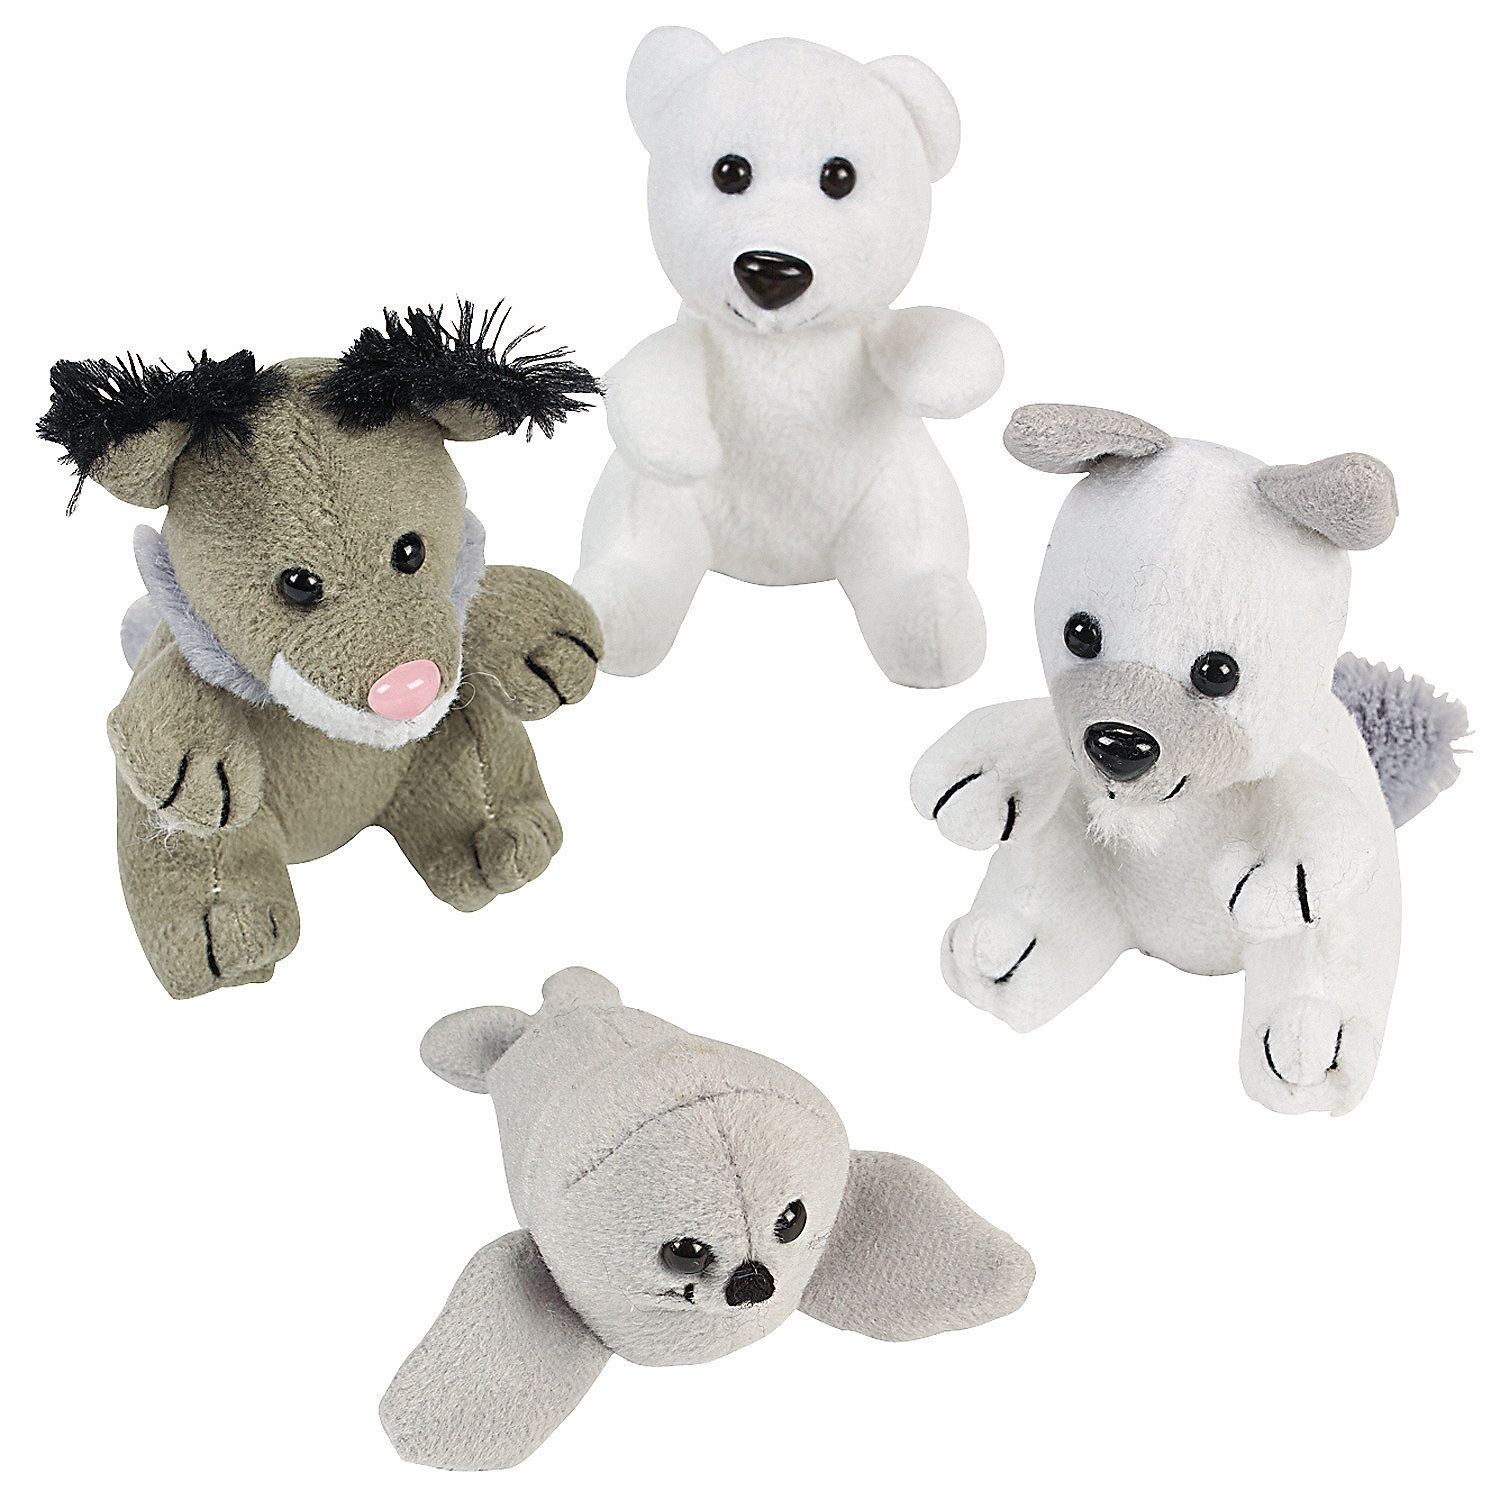 Plush Arctic Animal Assortment